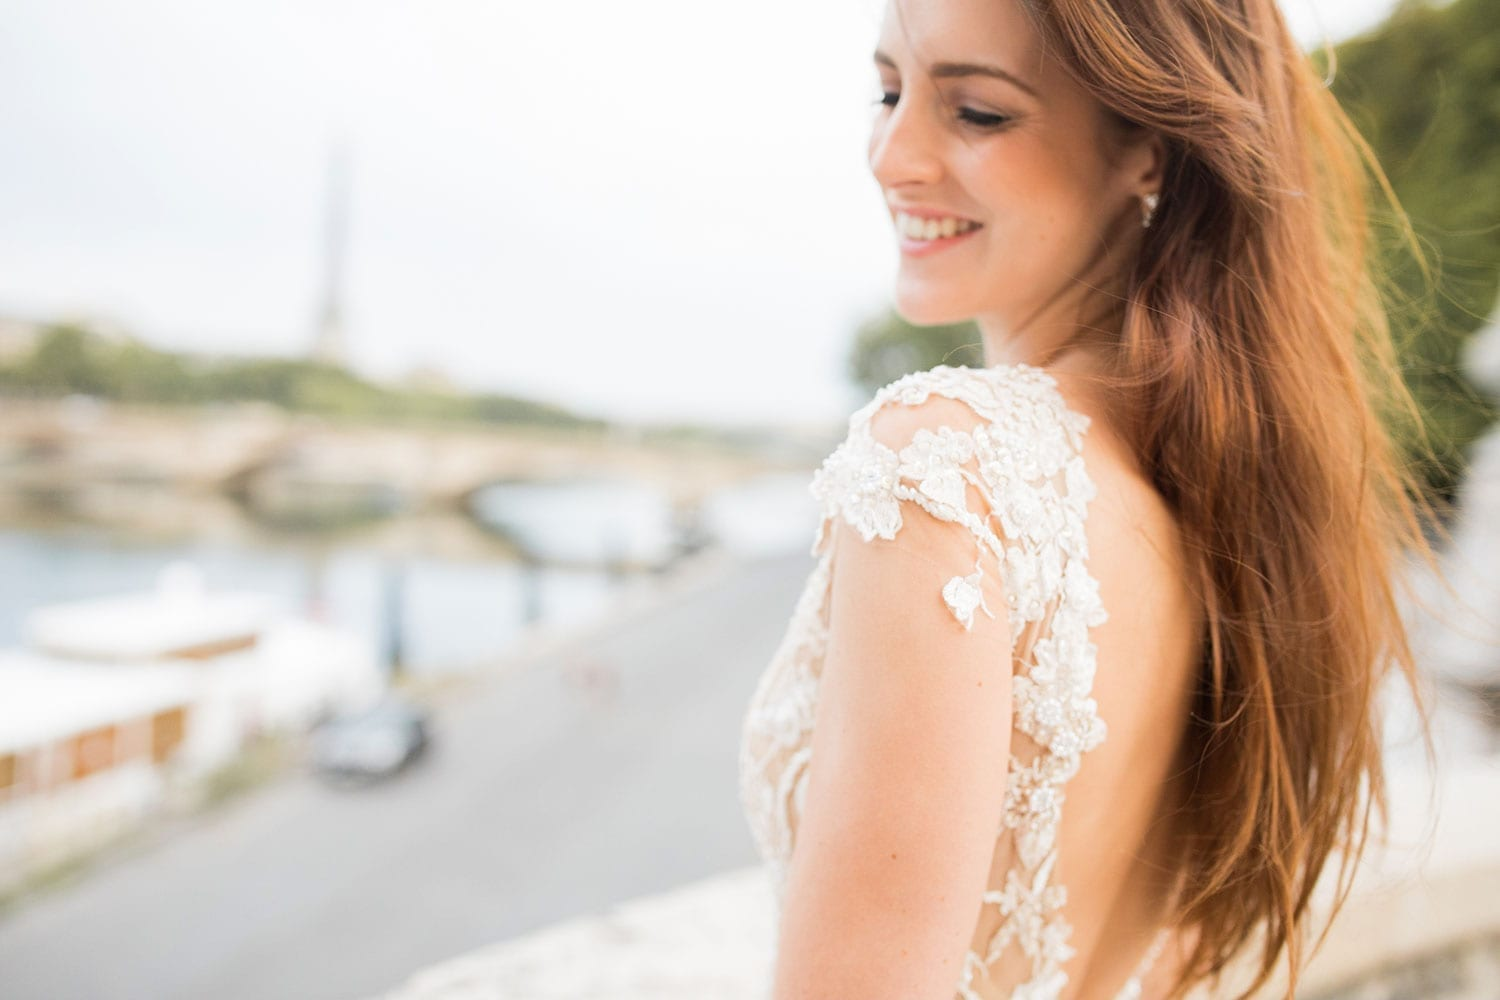 Model wearing Vinka Design Vianna Wedding Dress, a dreamy wedding dress with richly beaded embroidery on a nude base, a slightly sheer skirt and elegant train. Gorgeous low back, little cap sleeves and front v-neckline. Close up of detail worn on bridge in Paris.